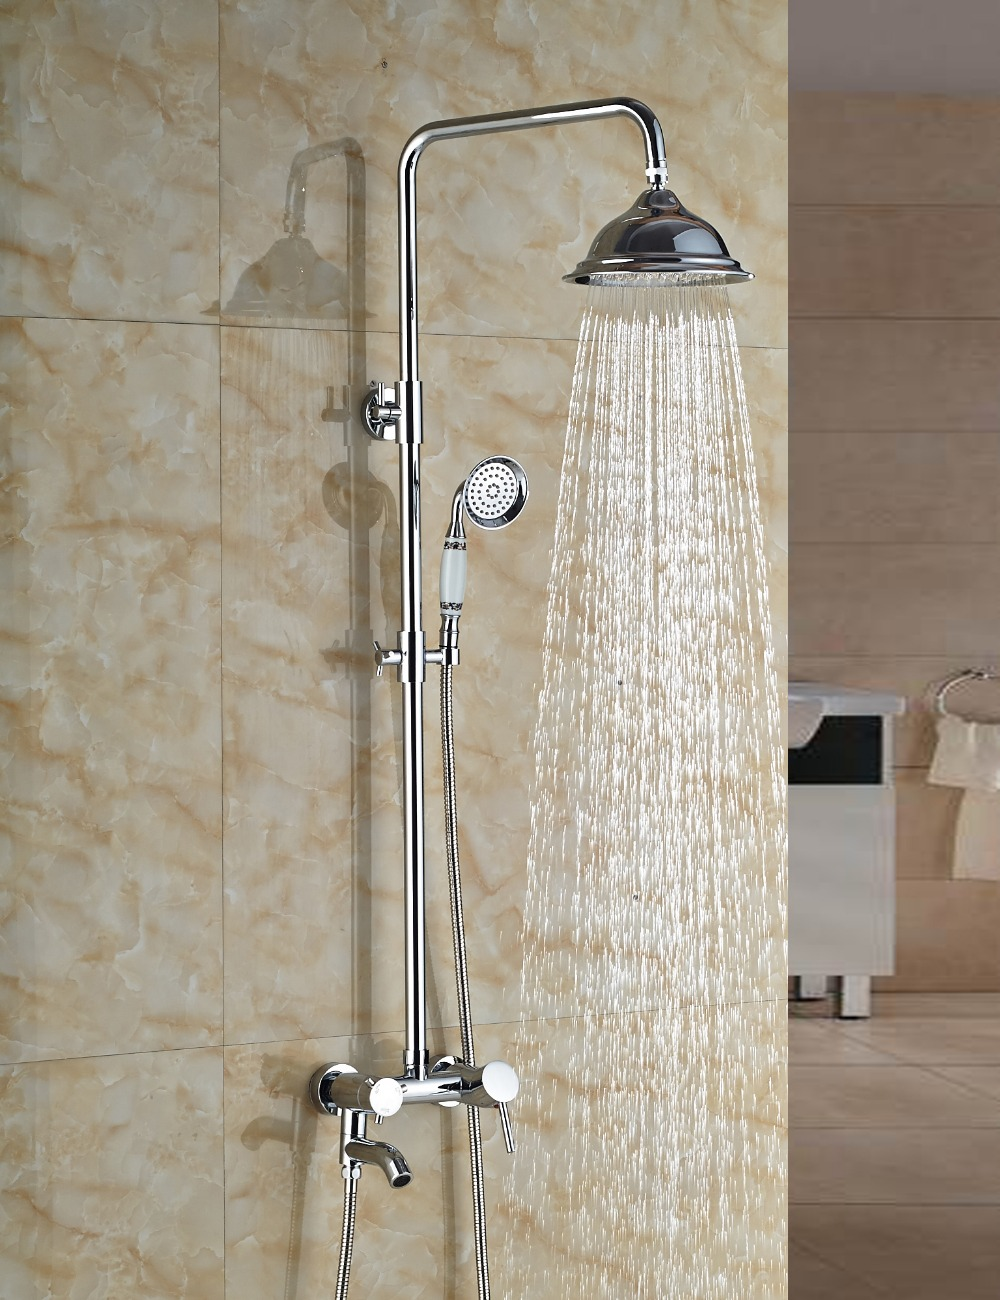 Wholesale And Retail Wall Mounted Chrome Finish Brass Bathroom Rain Shower Faucet Tub Spout Mixer Tap W/ Hand Shower wholesale and retail polished chrome brass waterfall spout bathroom tub faucet w hand shower sprayer mixer tap